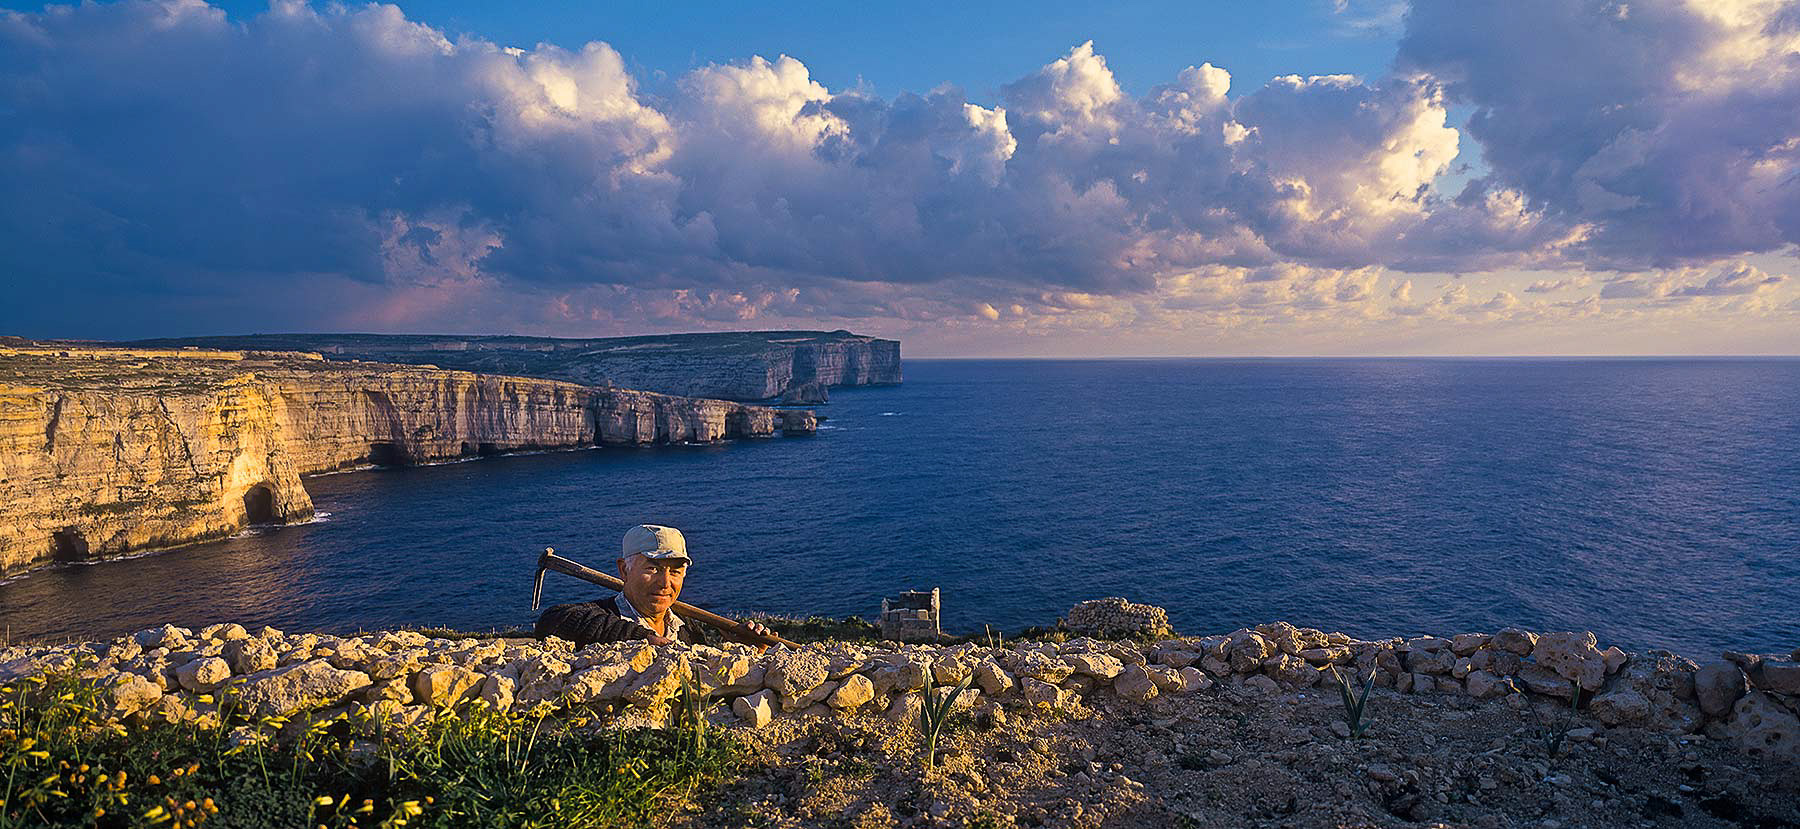 06-Malta-farmer----Version-2